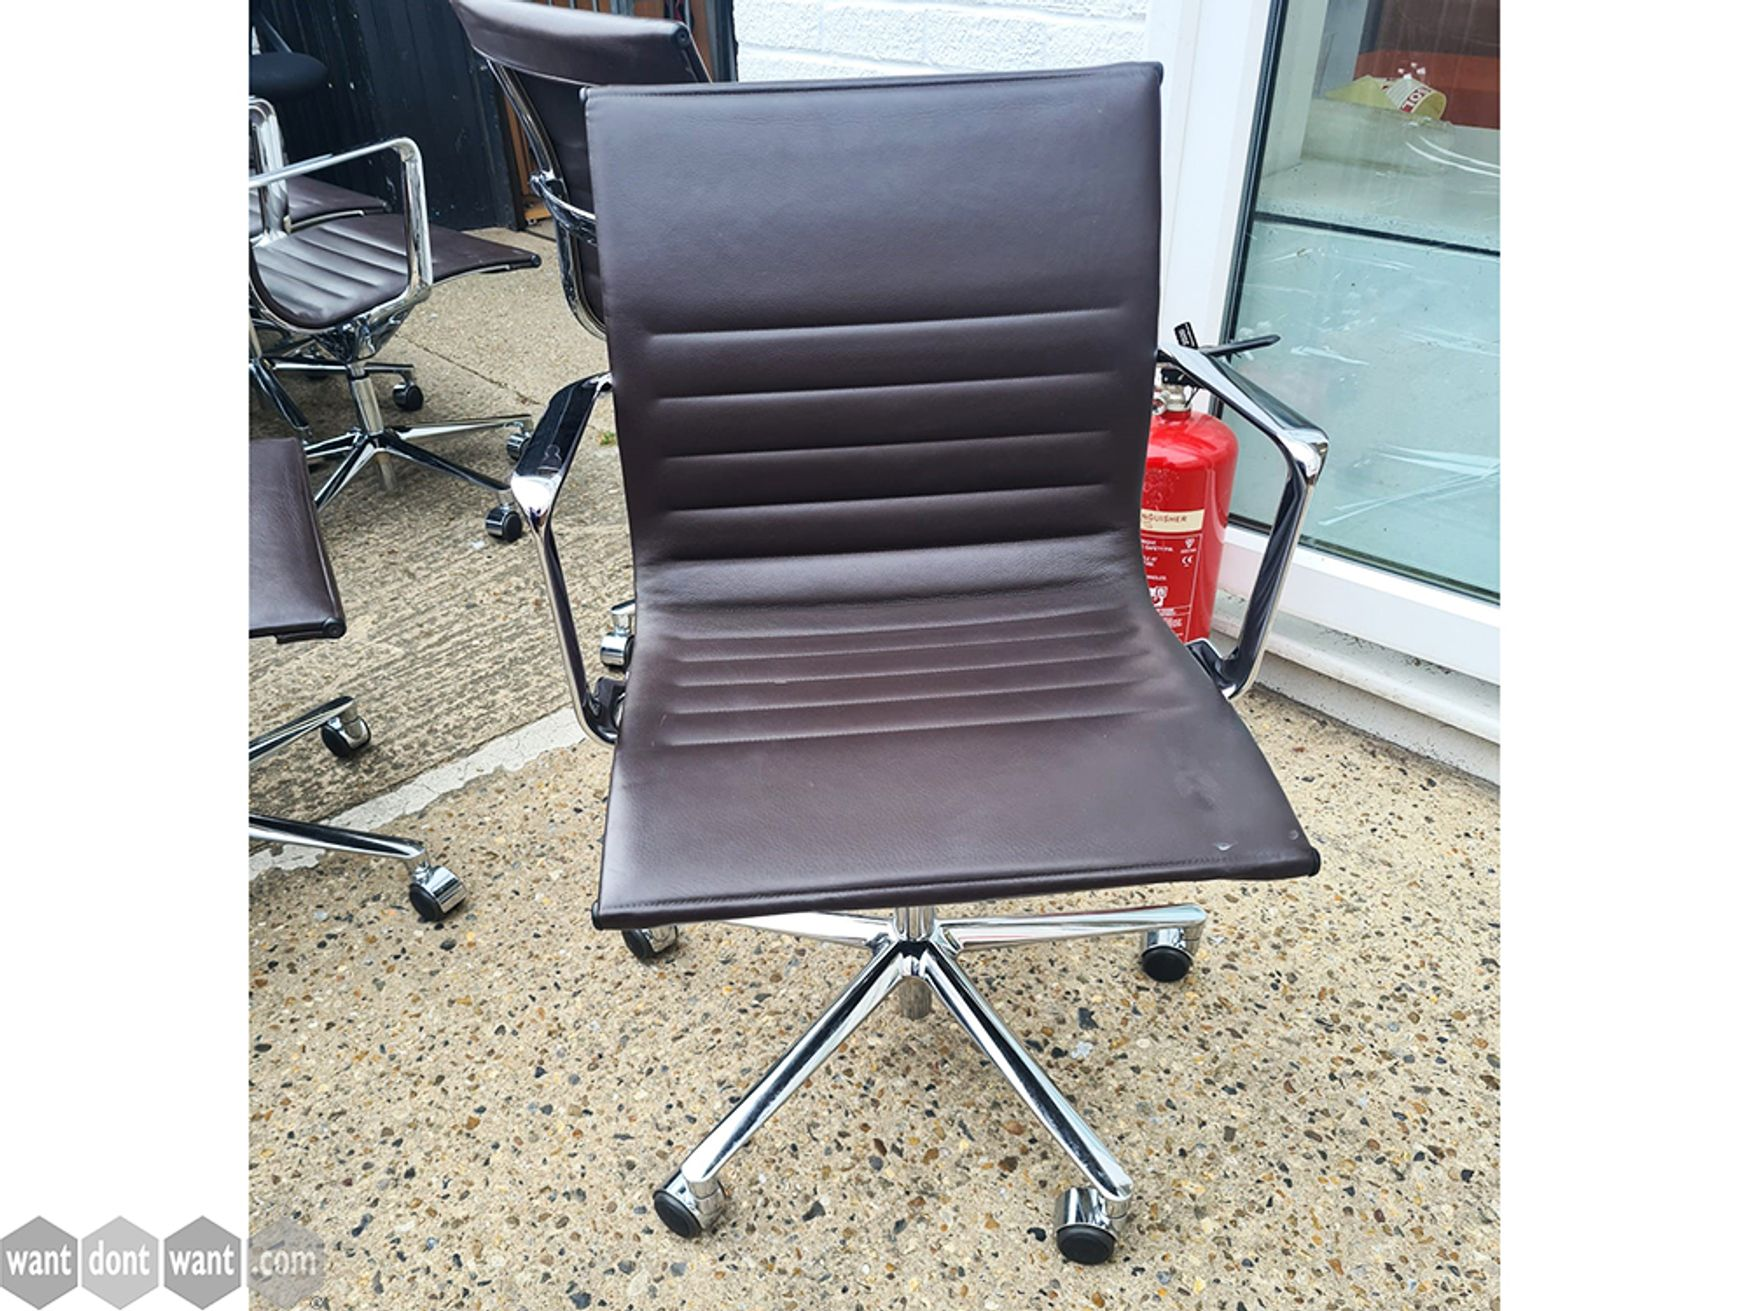 Used ICF Una Chairs in Brown Leather